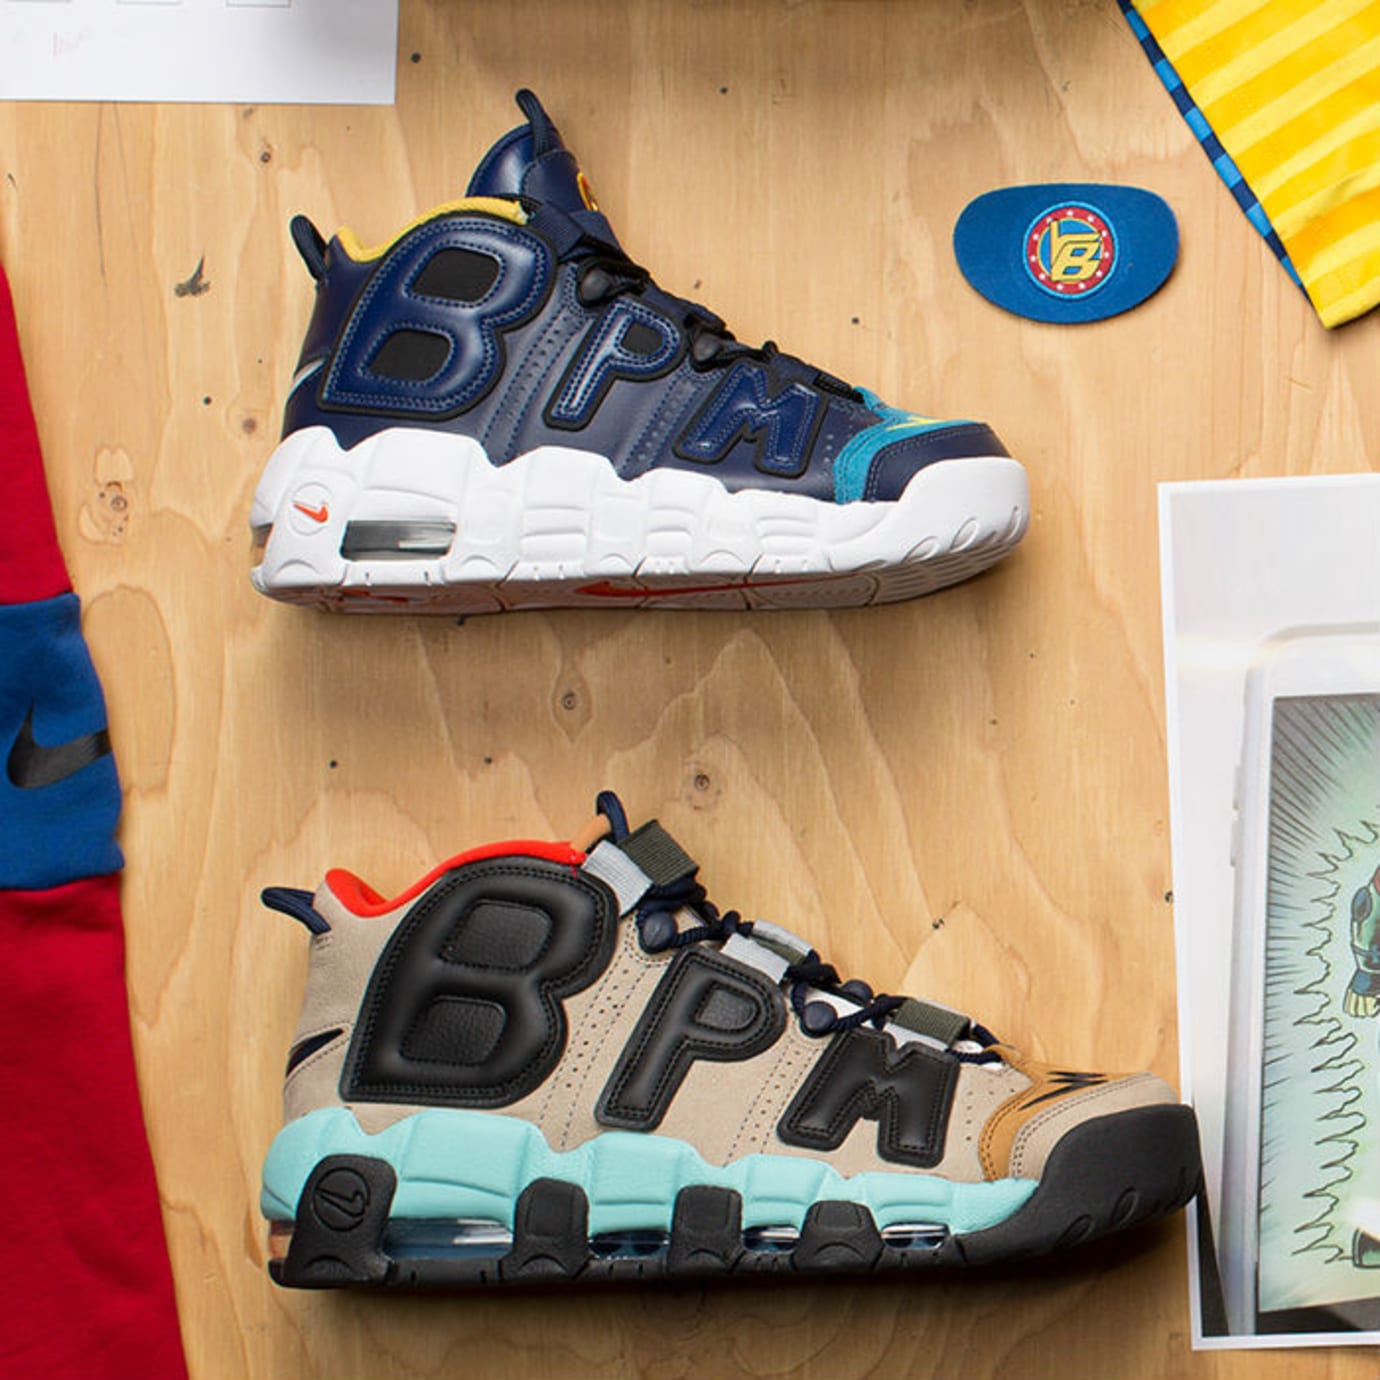 Nike Air More Uptempo Doernbecher Samples